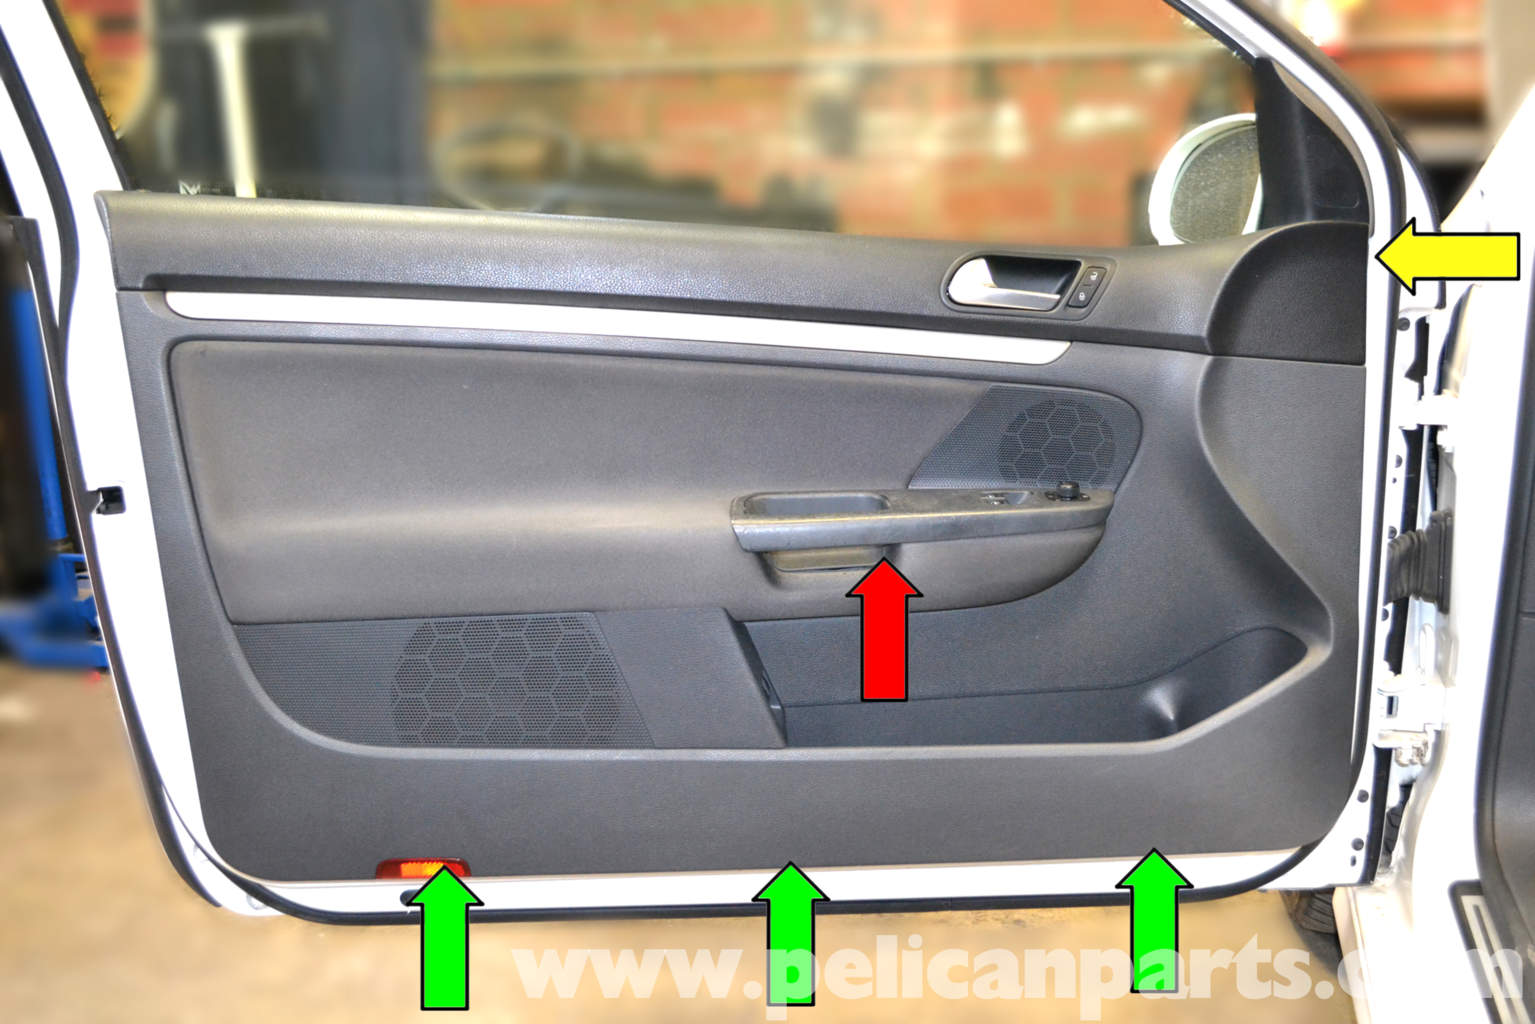 volkswagen golf gti mk v front door panel removal 2006 2009 pelican parts diy maintenance. Black Bedroom Furniture Sets. Home Design Ideas